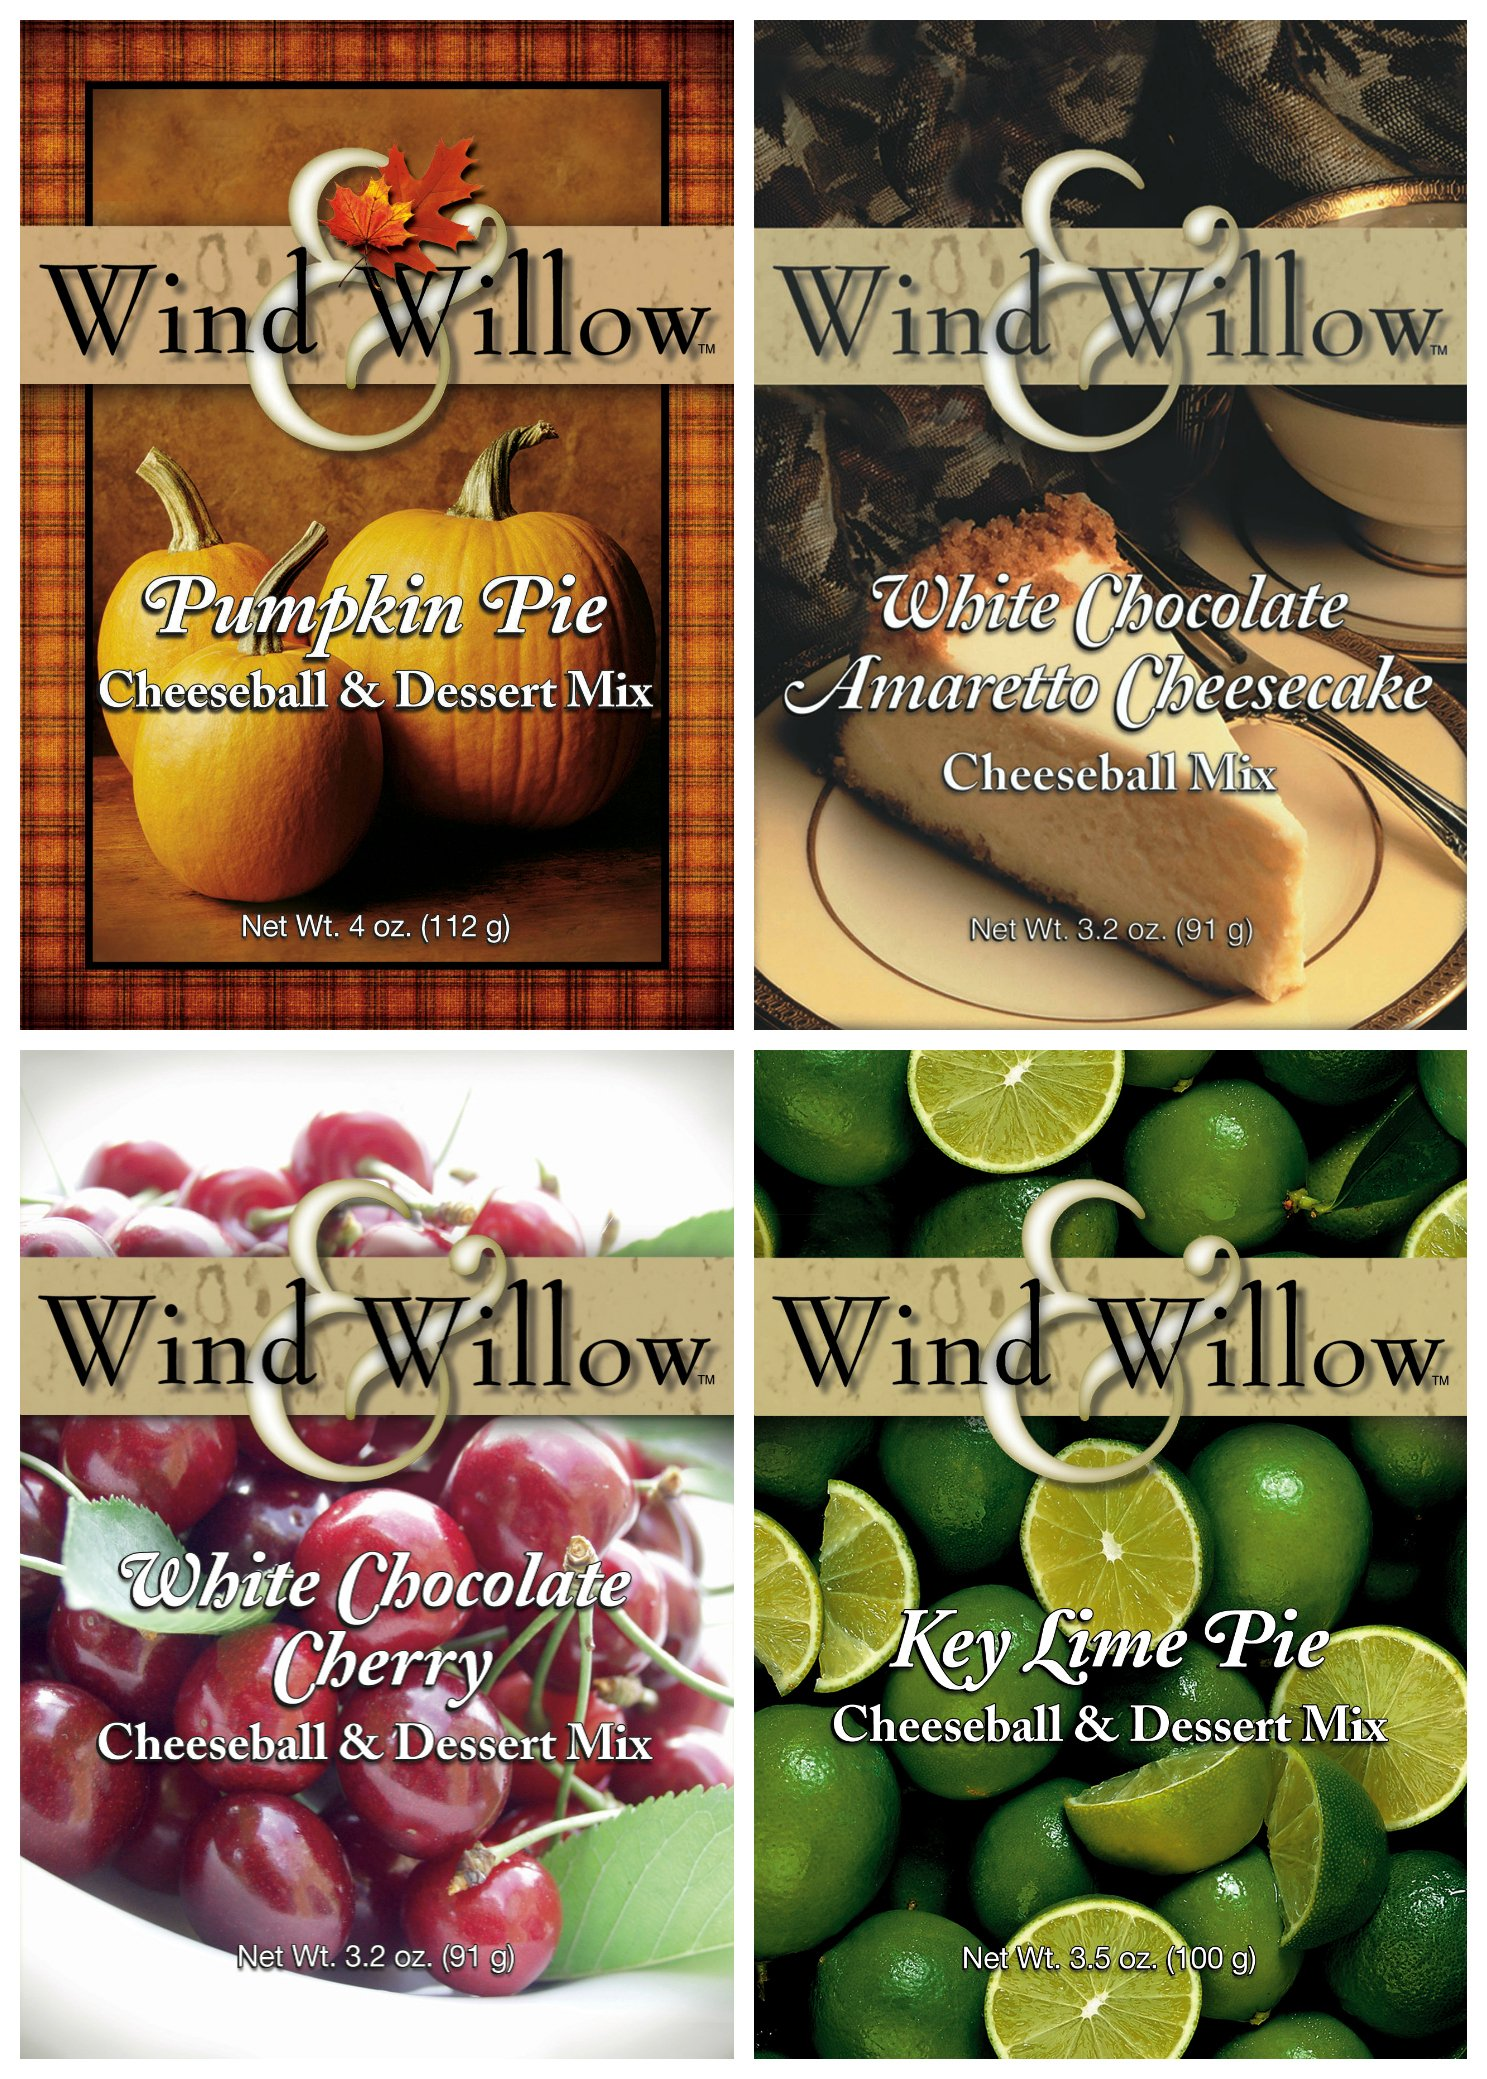 Wind & Willow Sweet Cheeseball and Dessert Mix Bundle (4 Pack): White Chocolate Amaretto Cheesecake, Key Lime Pie, White Chocolate Cherry, and Pumpkin Pie by Wind & Willow